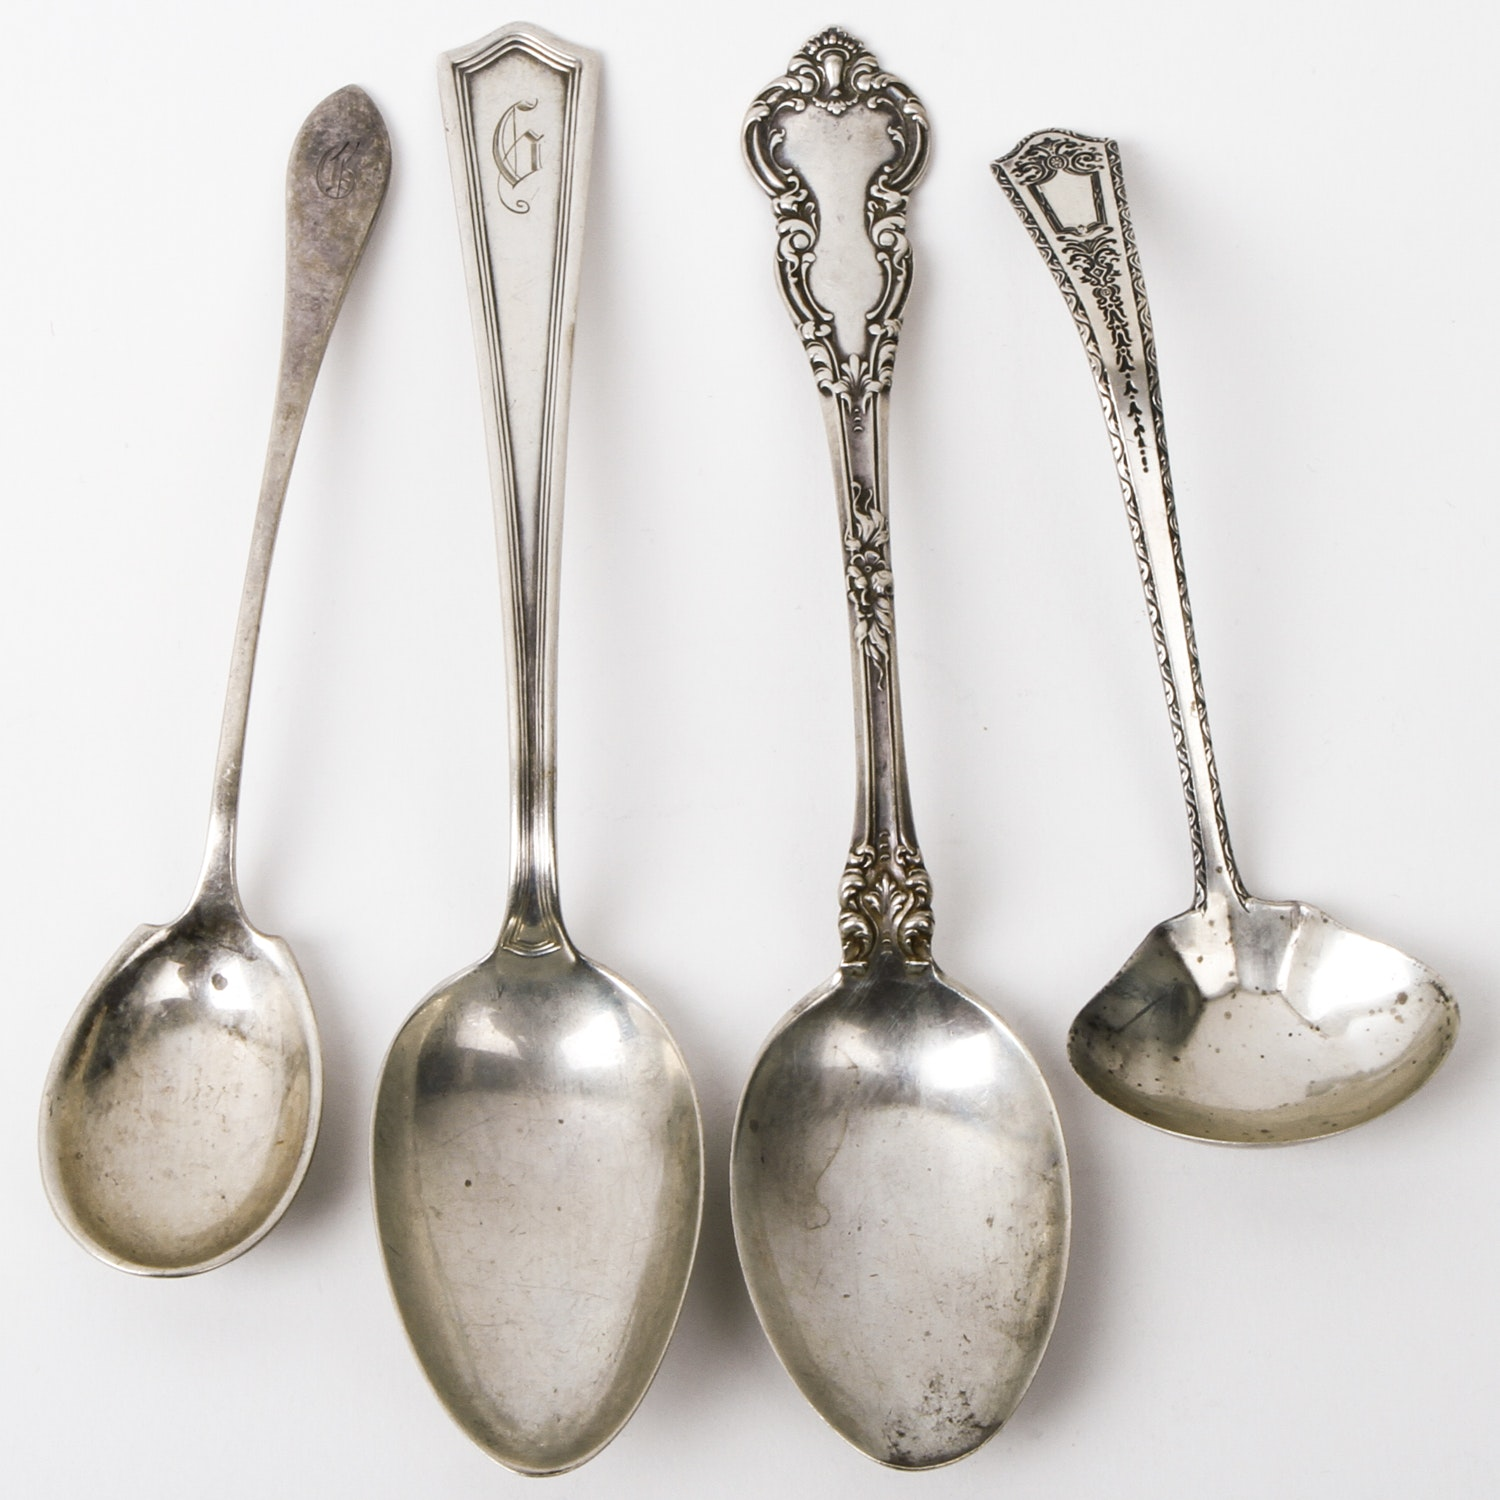 Four Antique Sterling Silver Spoons